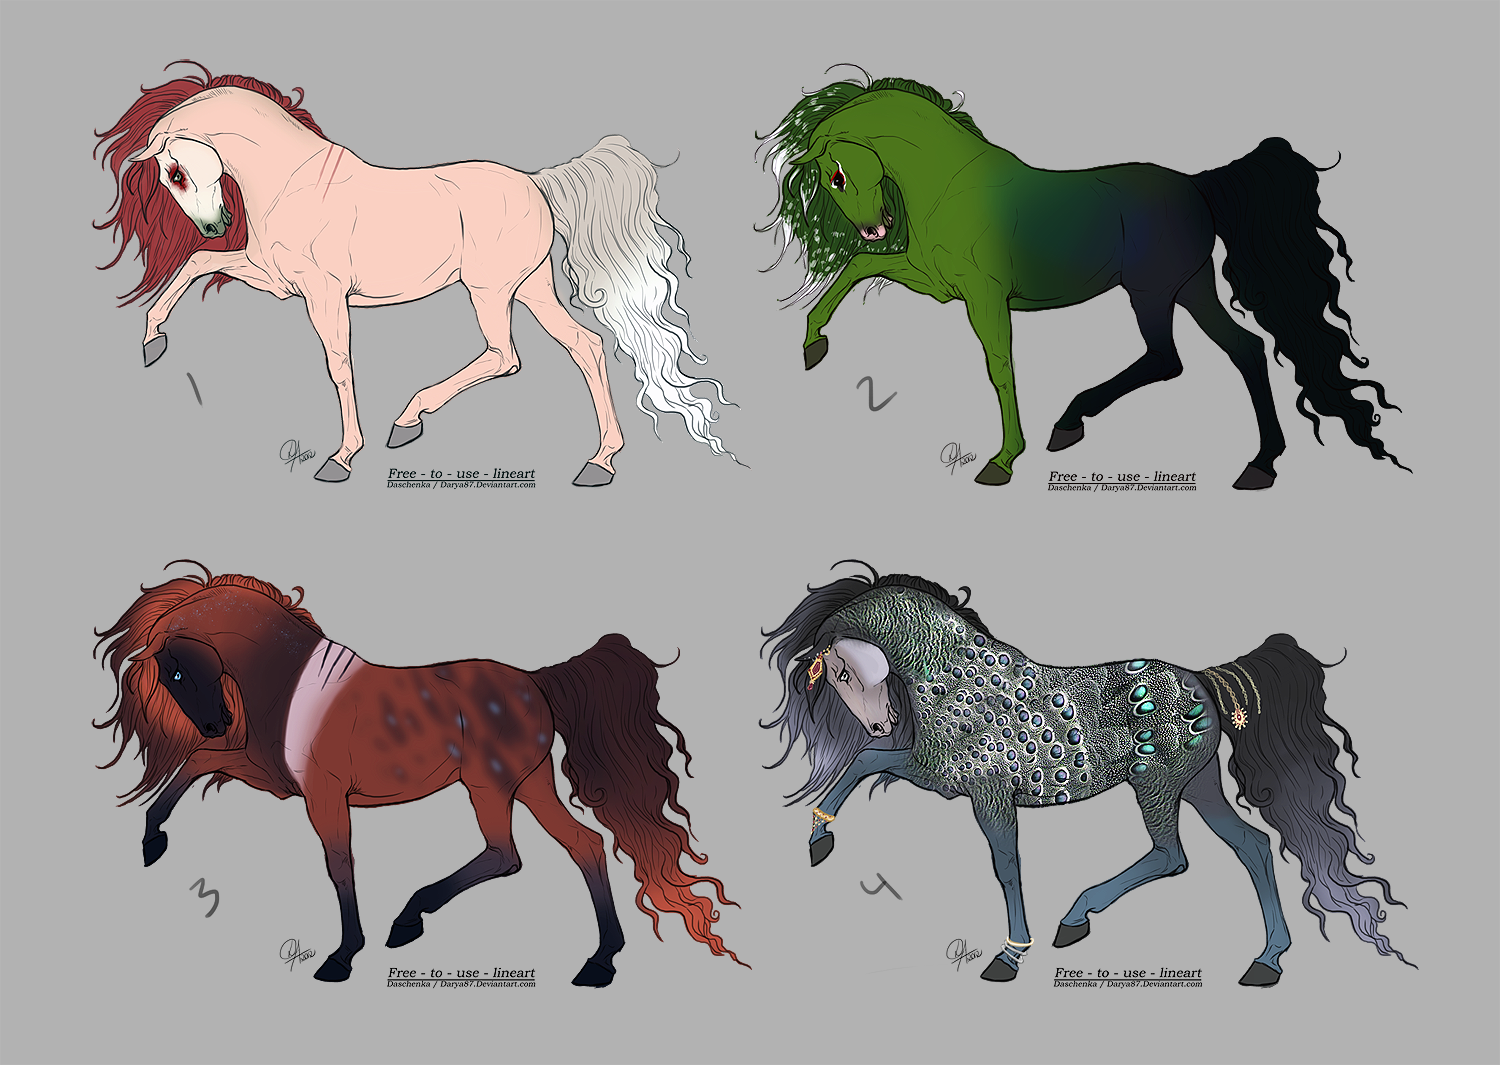 Unnatural Horse Draw To Adopt 1 Canceled By Vin Dit Adopts On Horse Drawing Drawings Horses